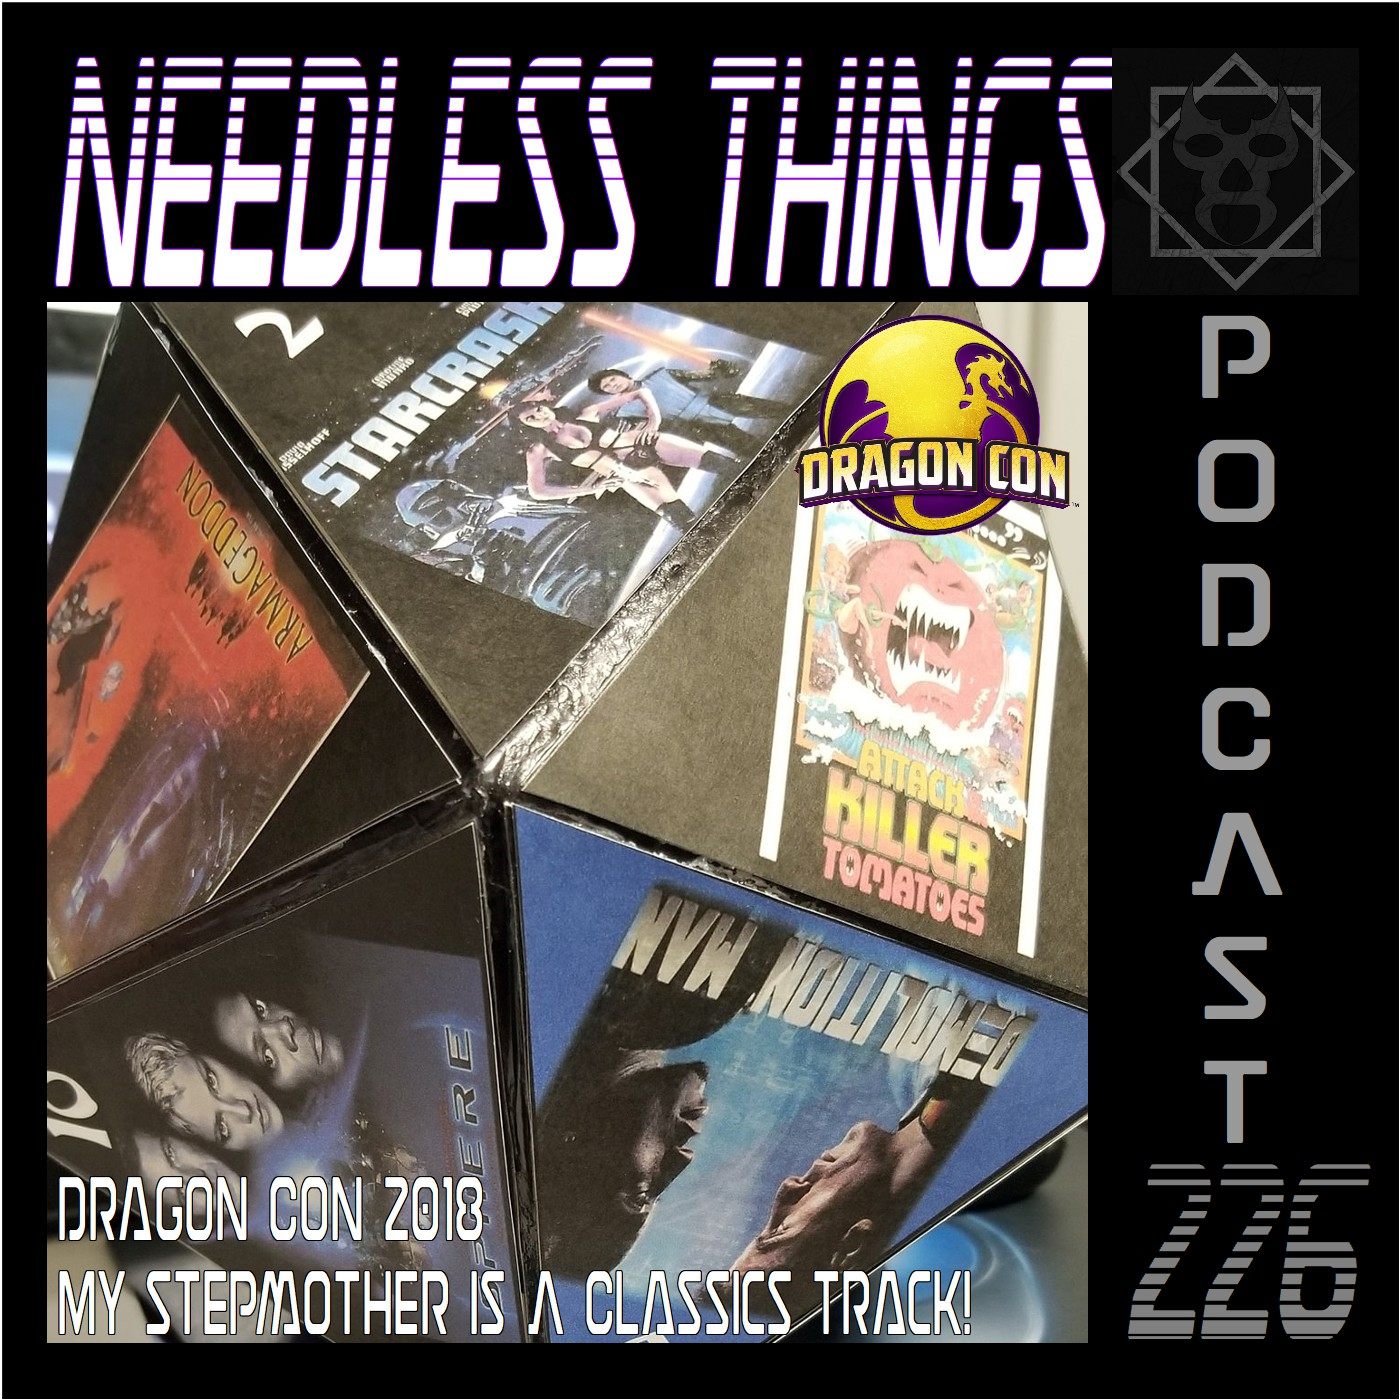 Needless Things Podcast 226 – Dragon Con 2018: My Stepmother Is A Classics Track!